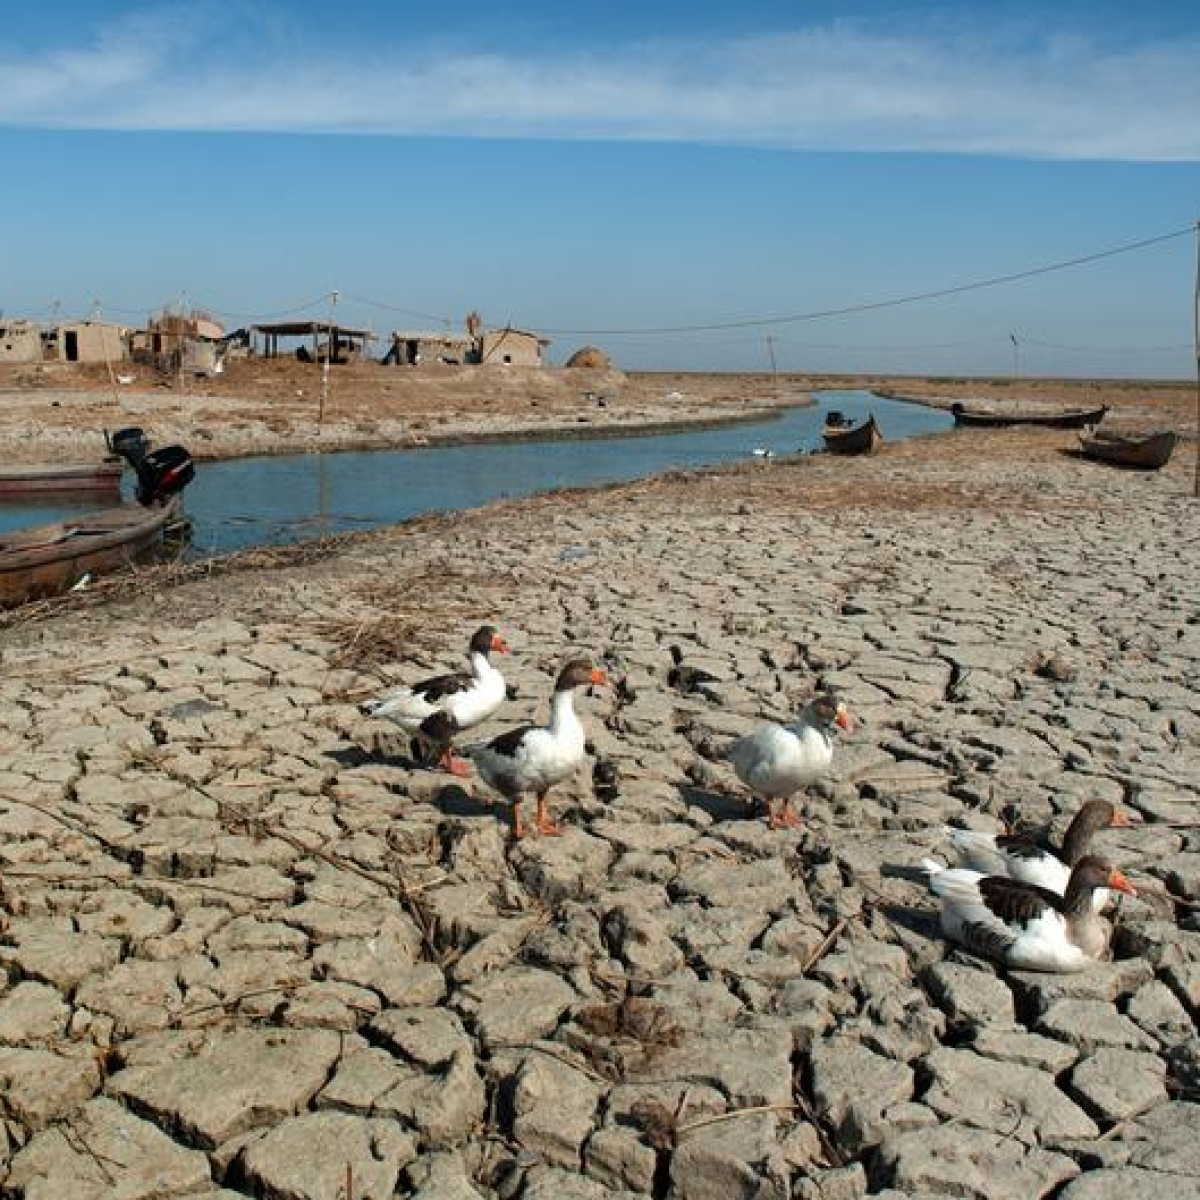 World's poor pay more for water than the rich